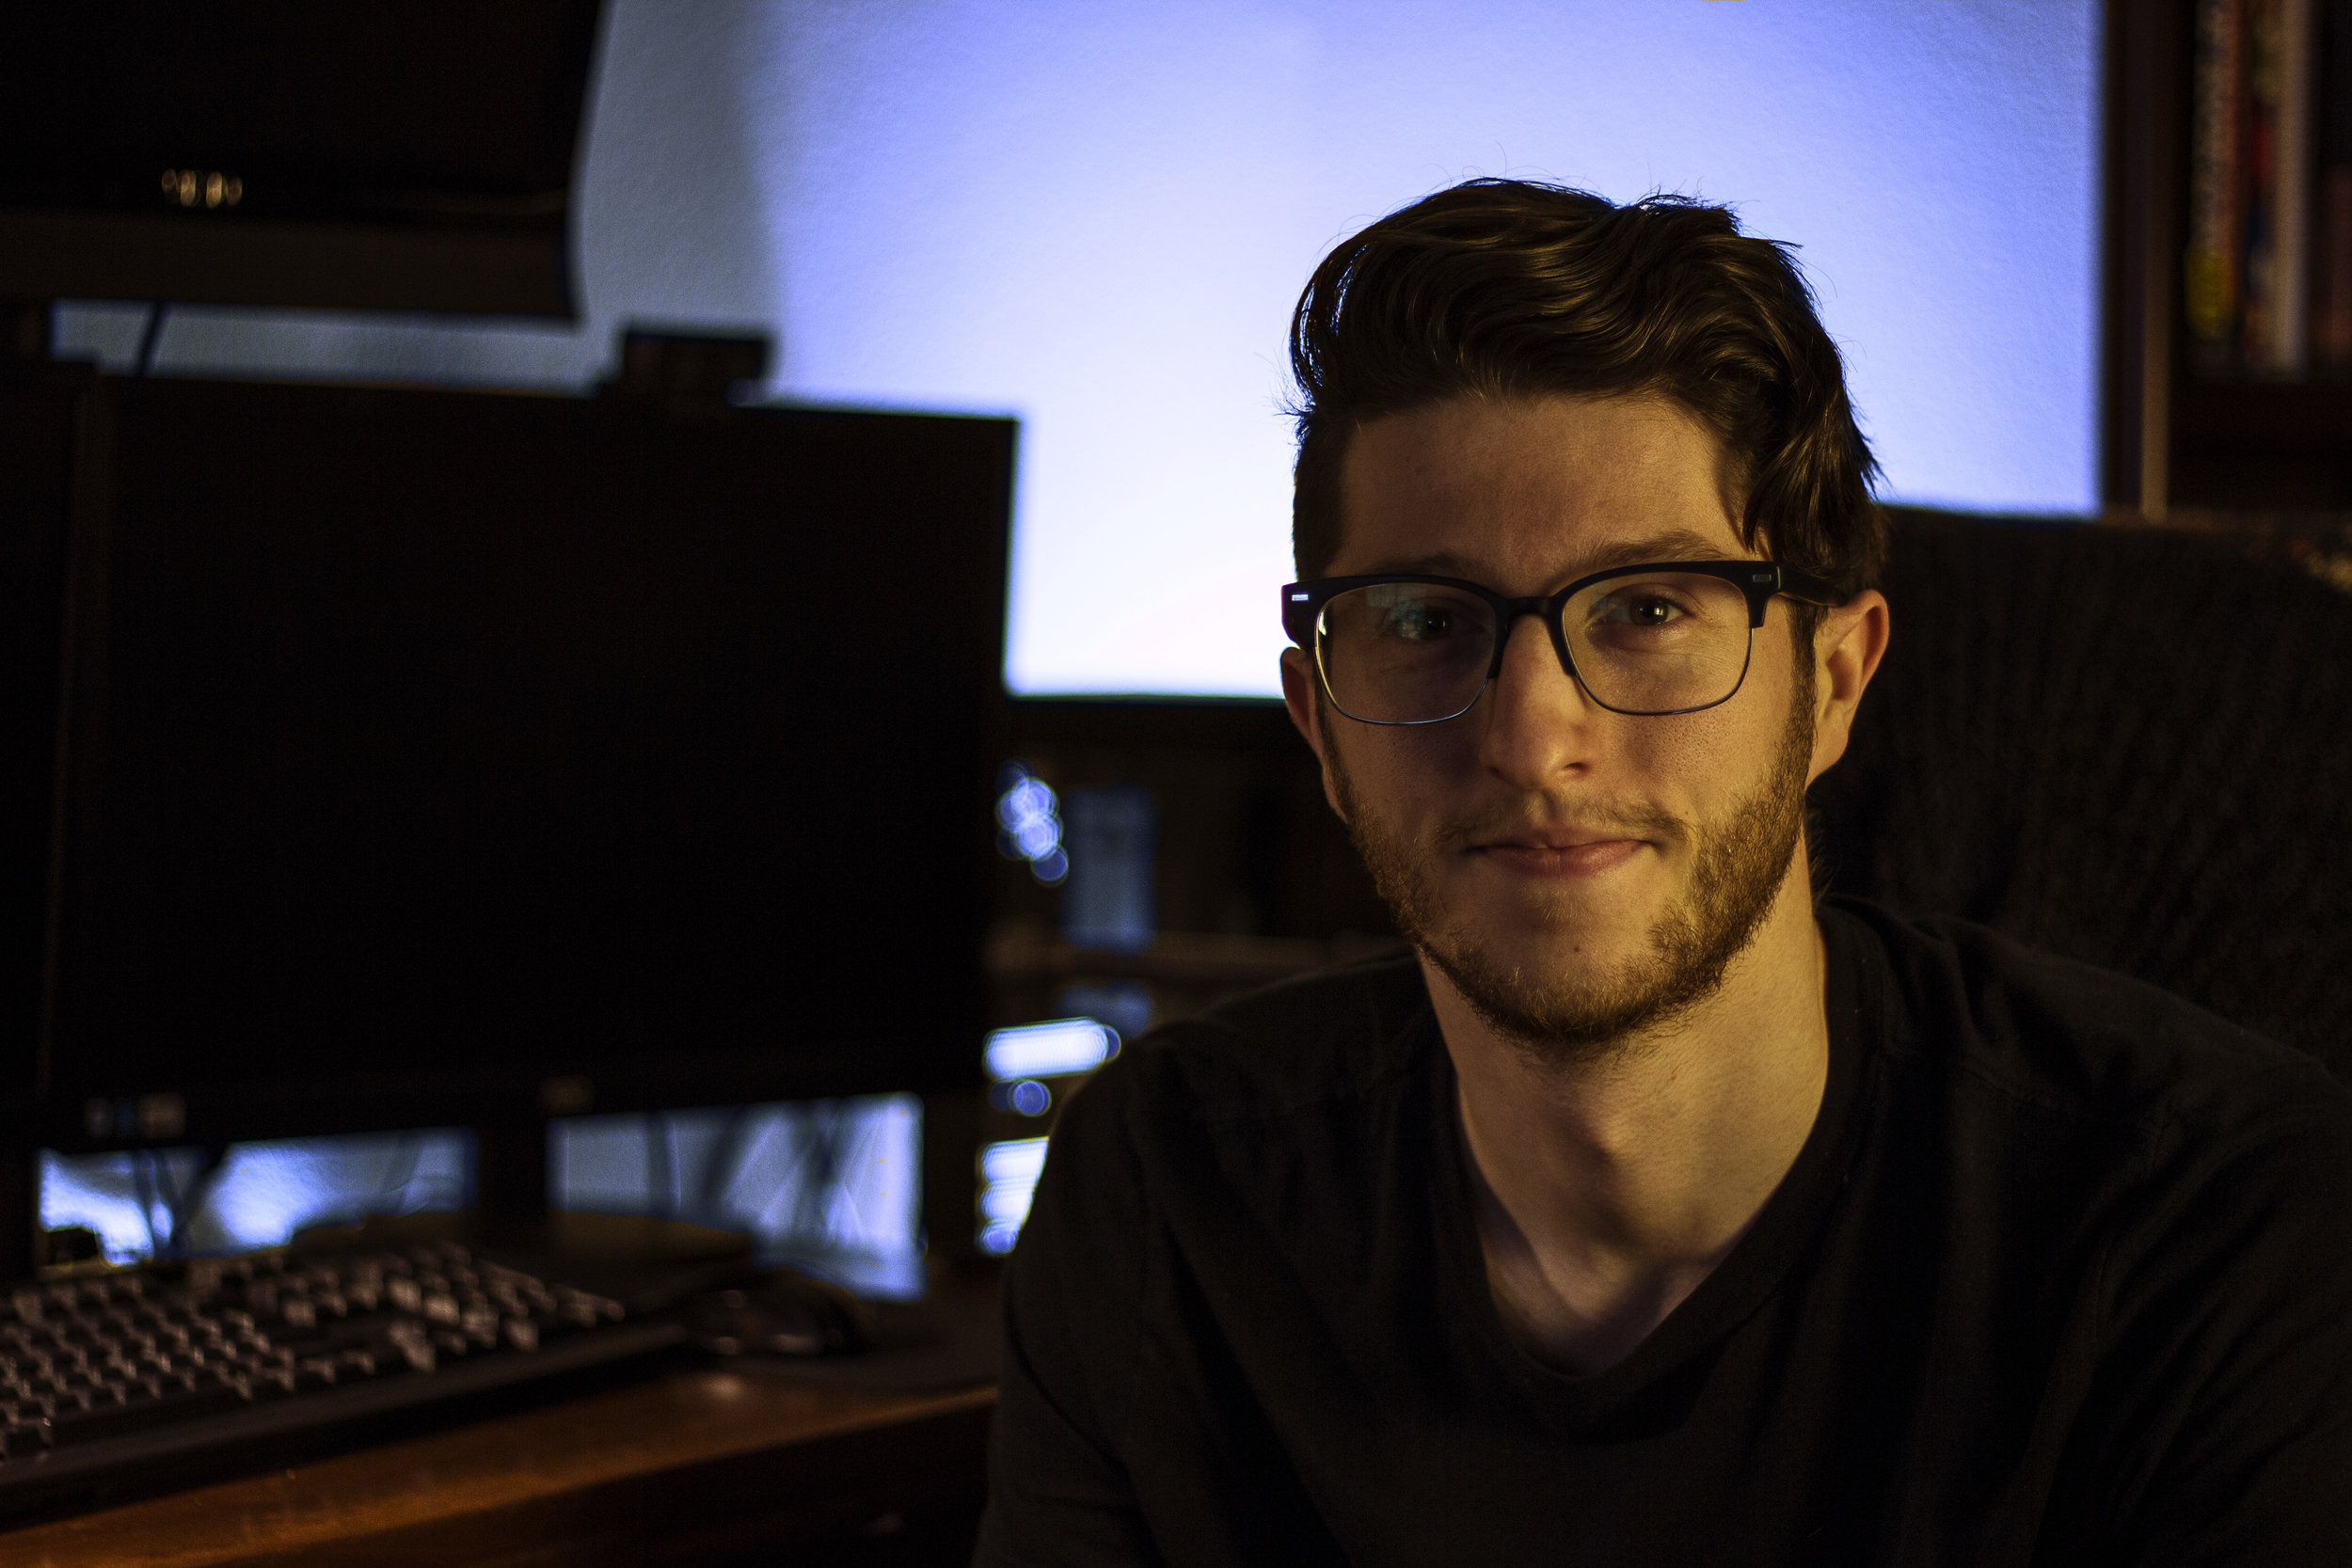 Daniel Waltzer - is a Broadcast Graphic Designer and Video Production Specialist currently working at NASA Johnson Space Center in Houston, TX.A natural problem-solver, capable of integrating into new productions and roles effectively, while consistently establishing utmost efficiency.